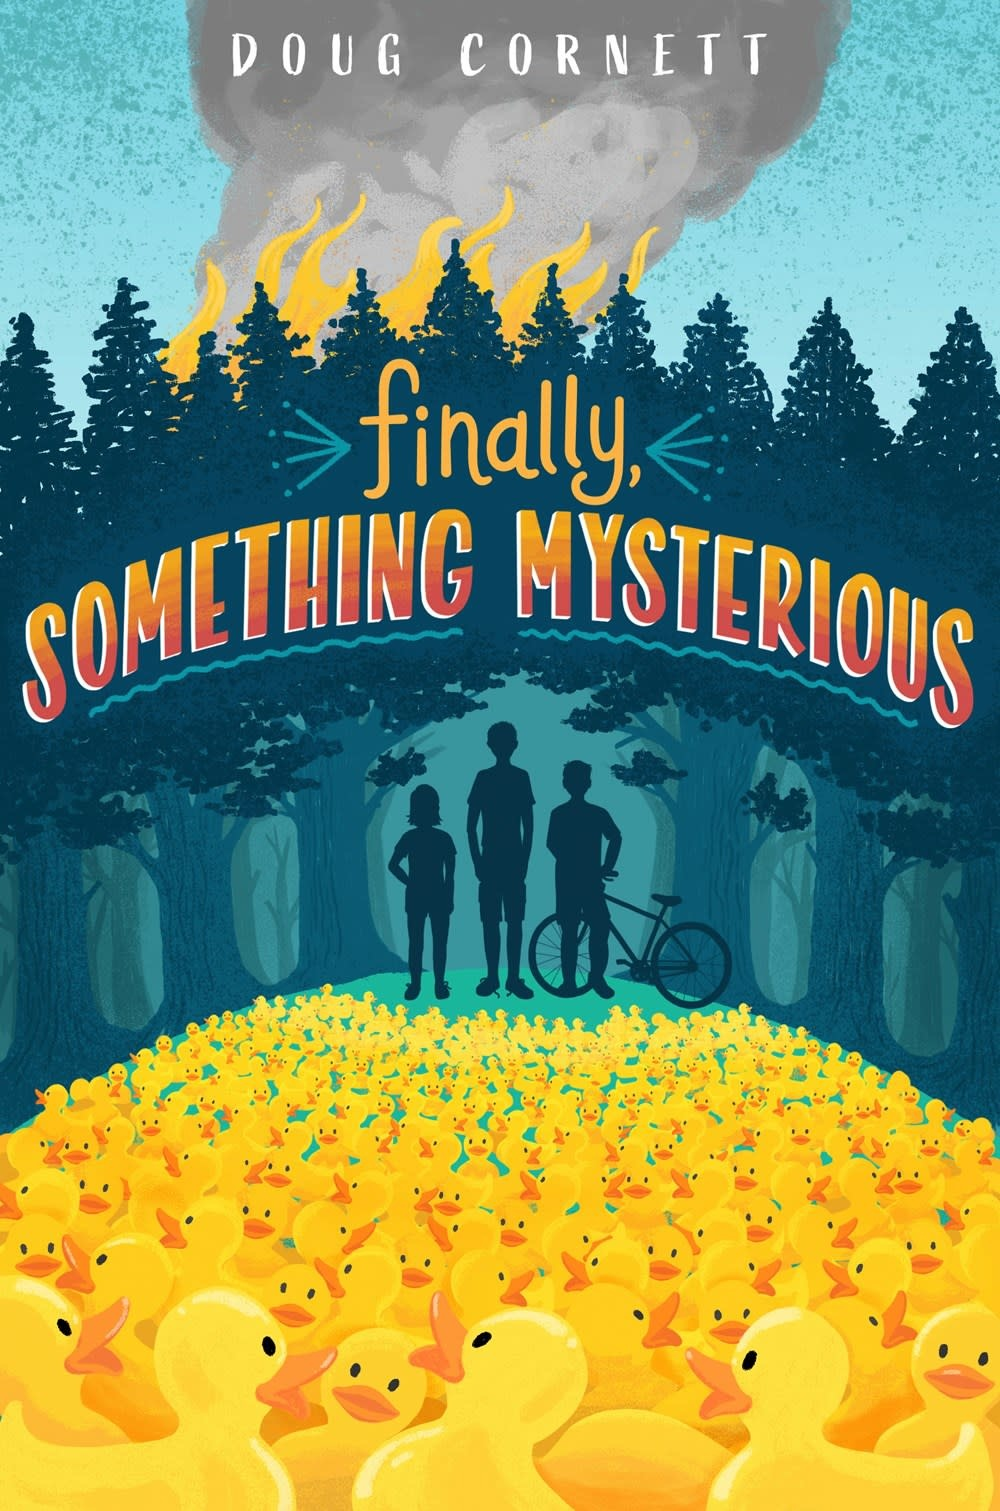 Knopf Books for Young Readers Finally, Something Mysterious